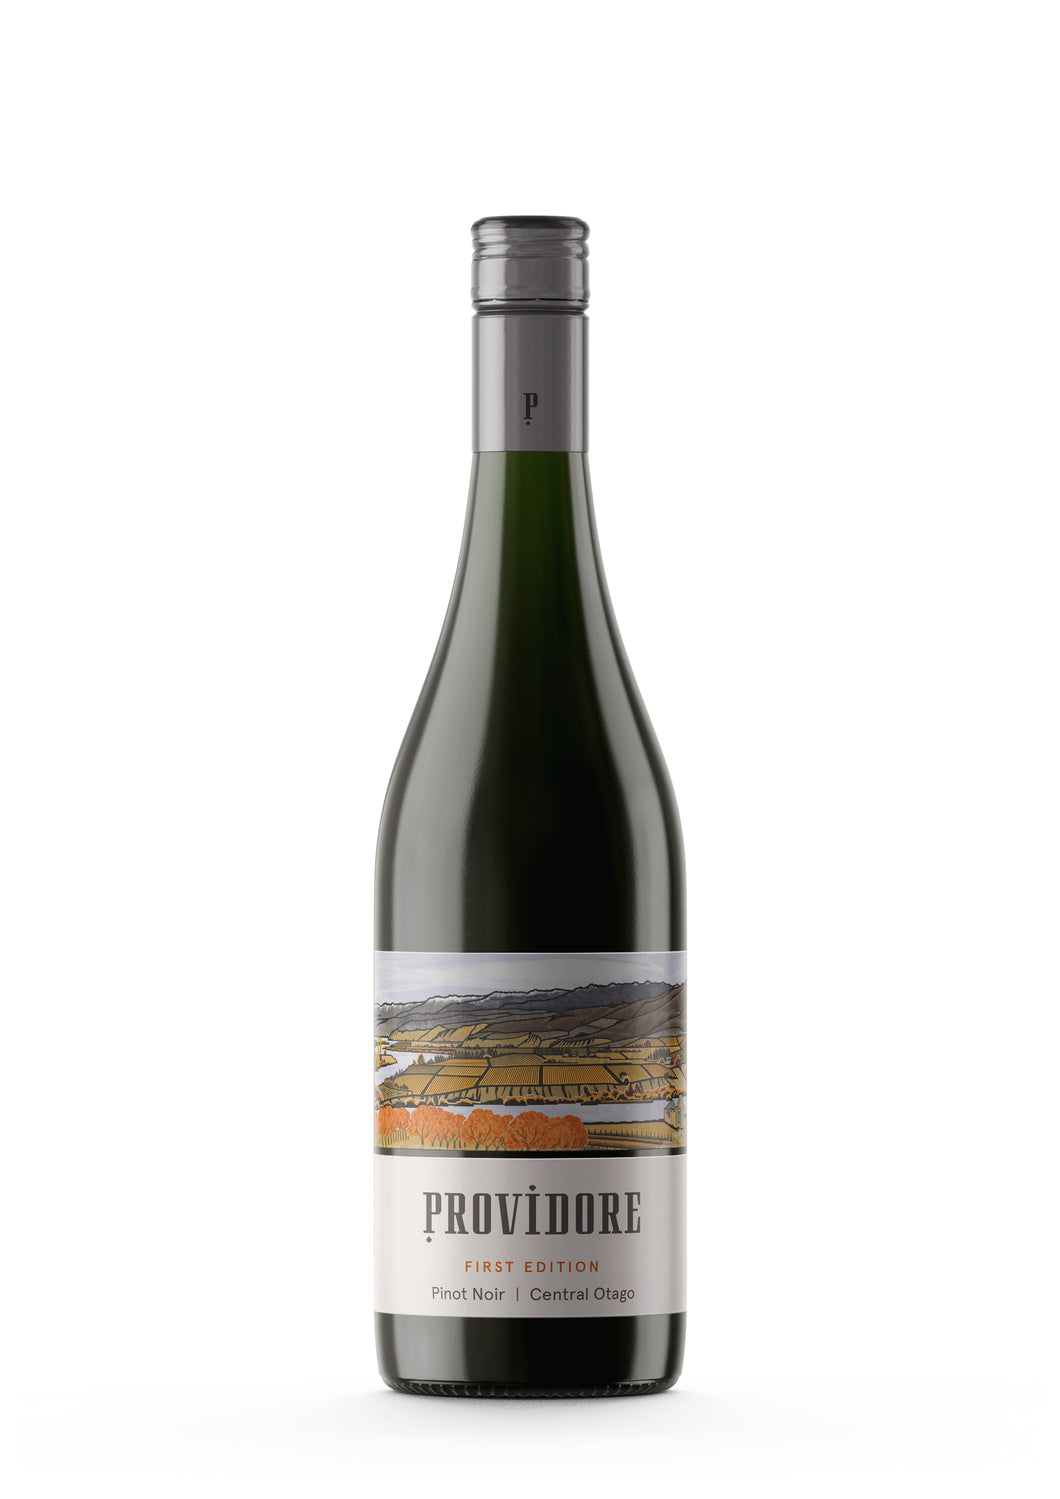 2018 Providore First Edition Pinot Noir